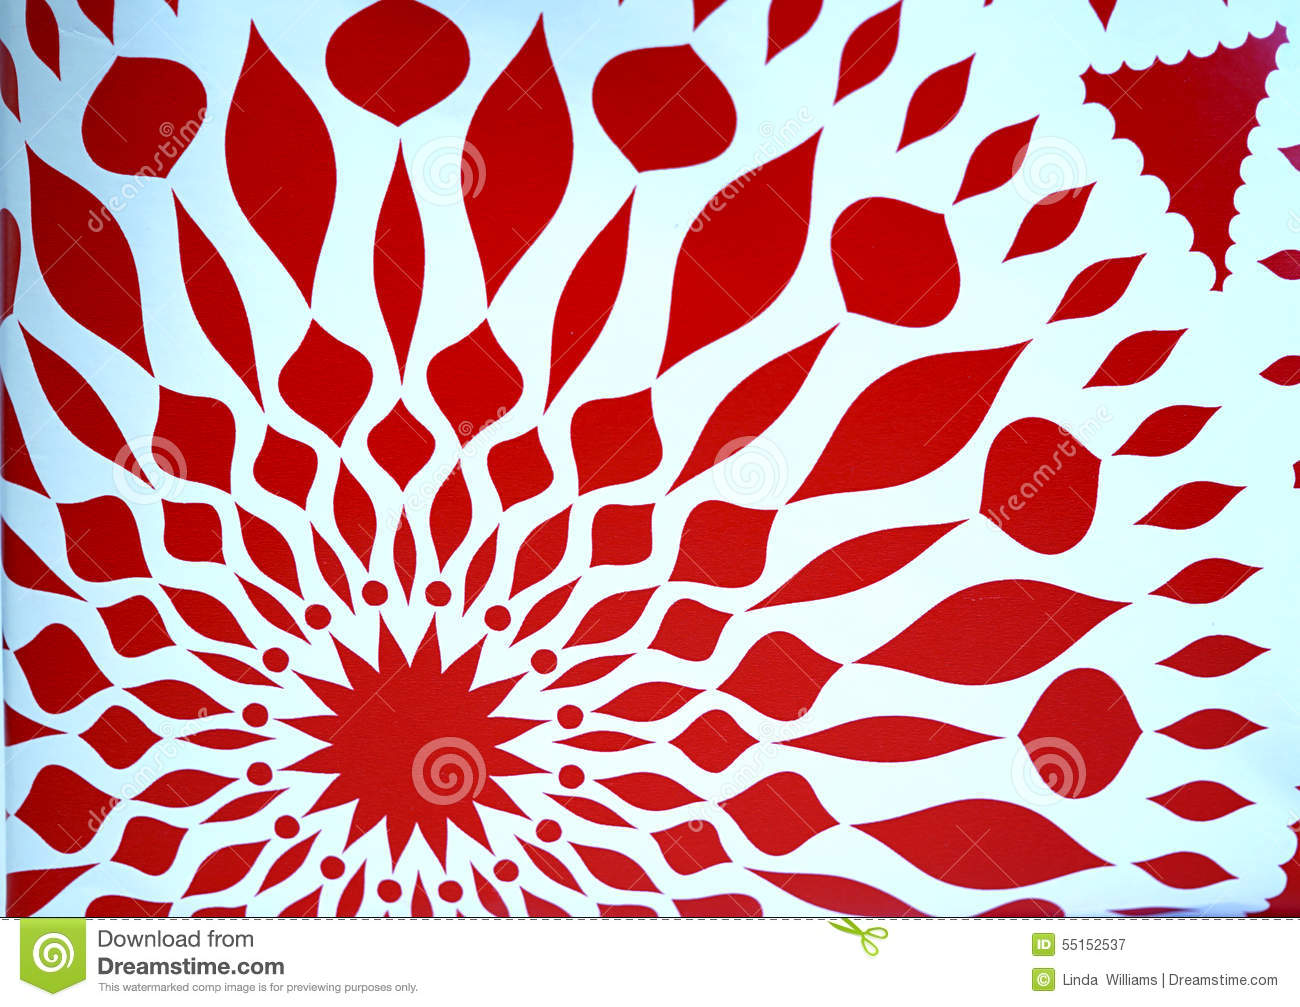 Red star symmetry abstract